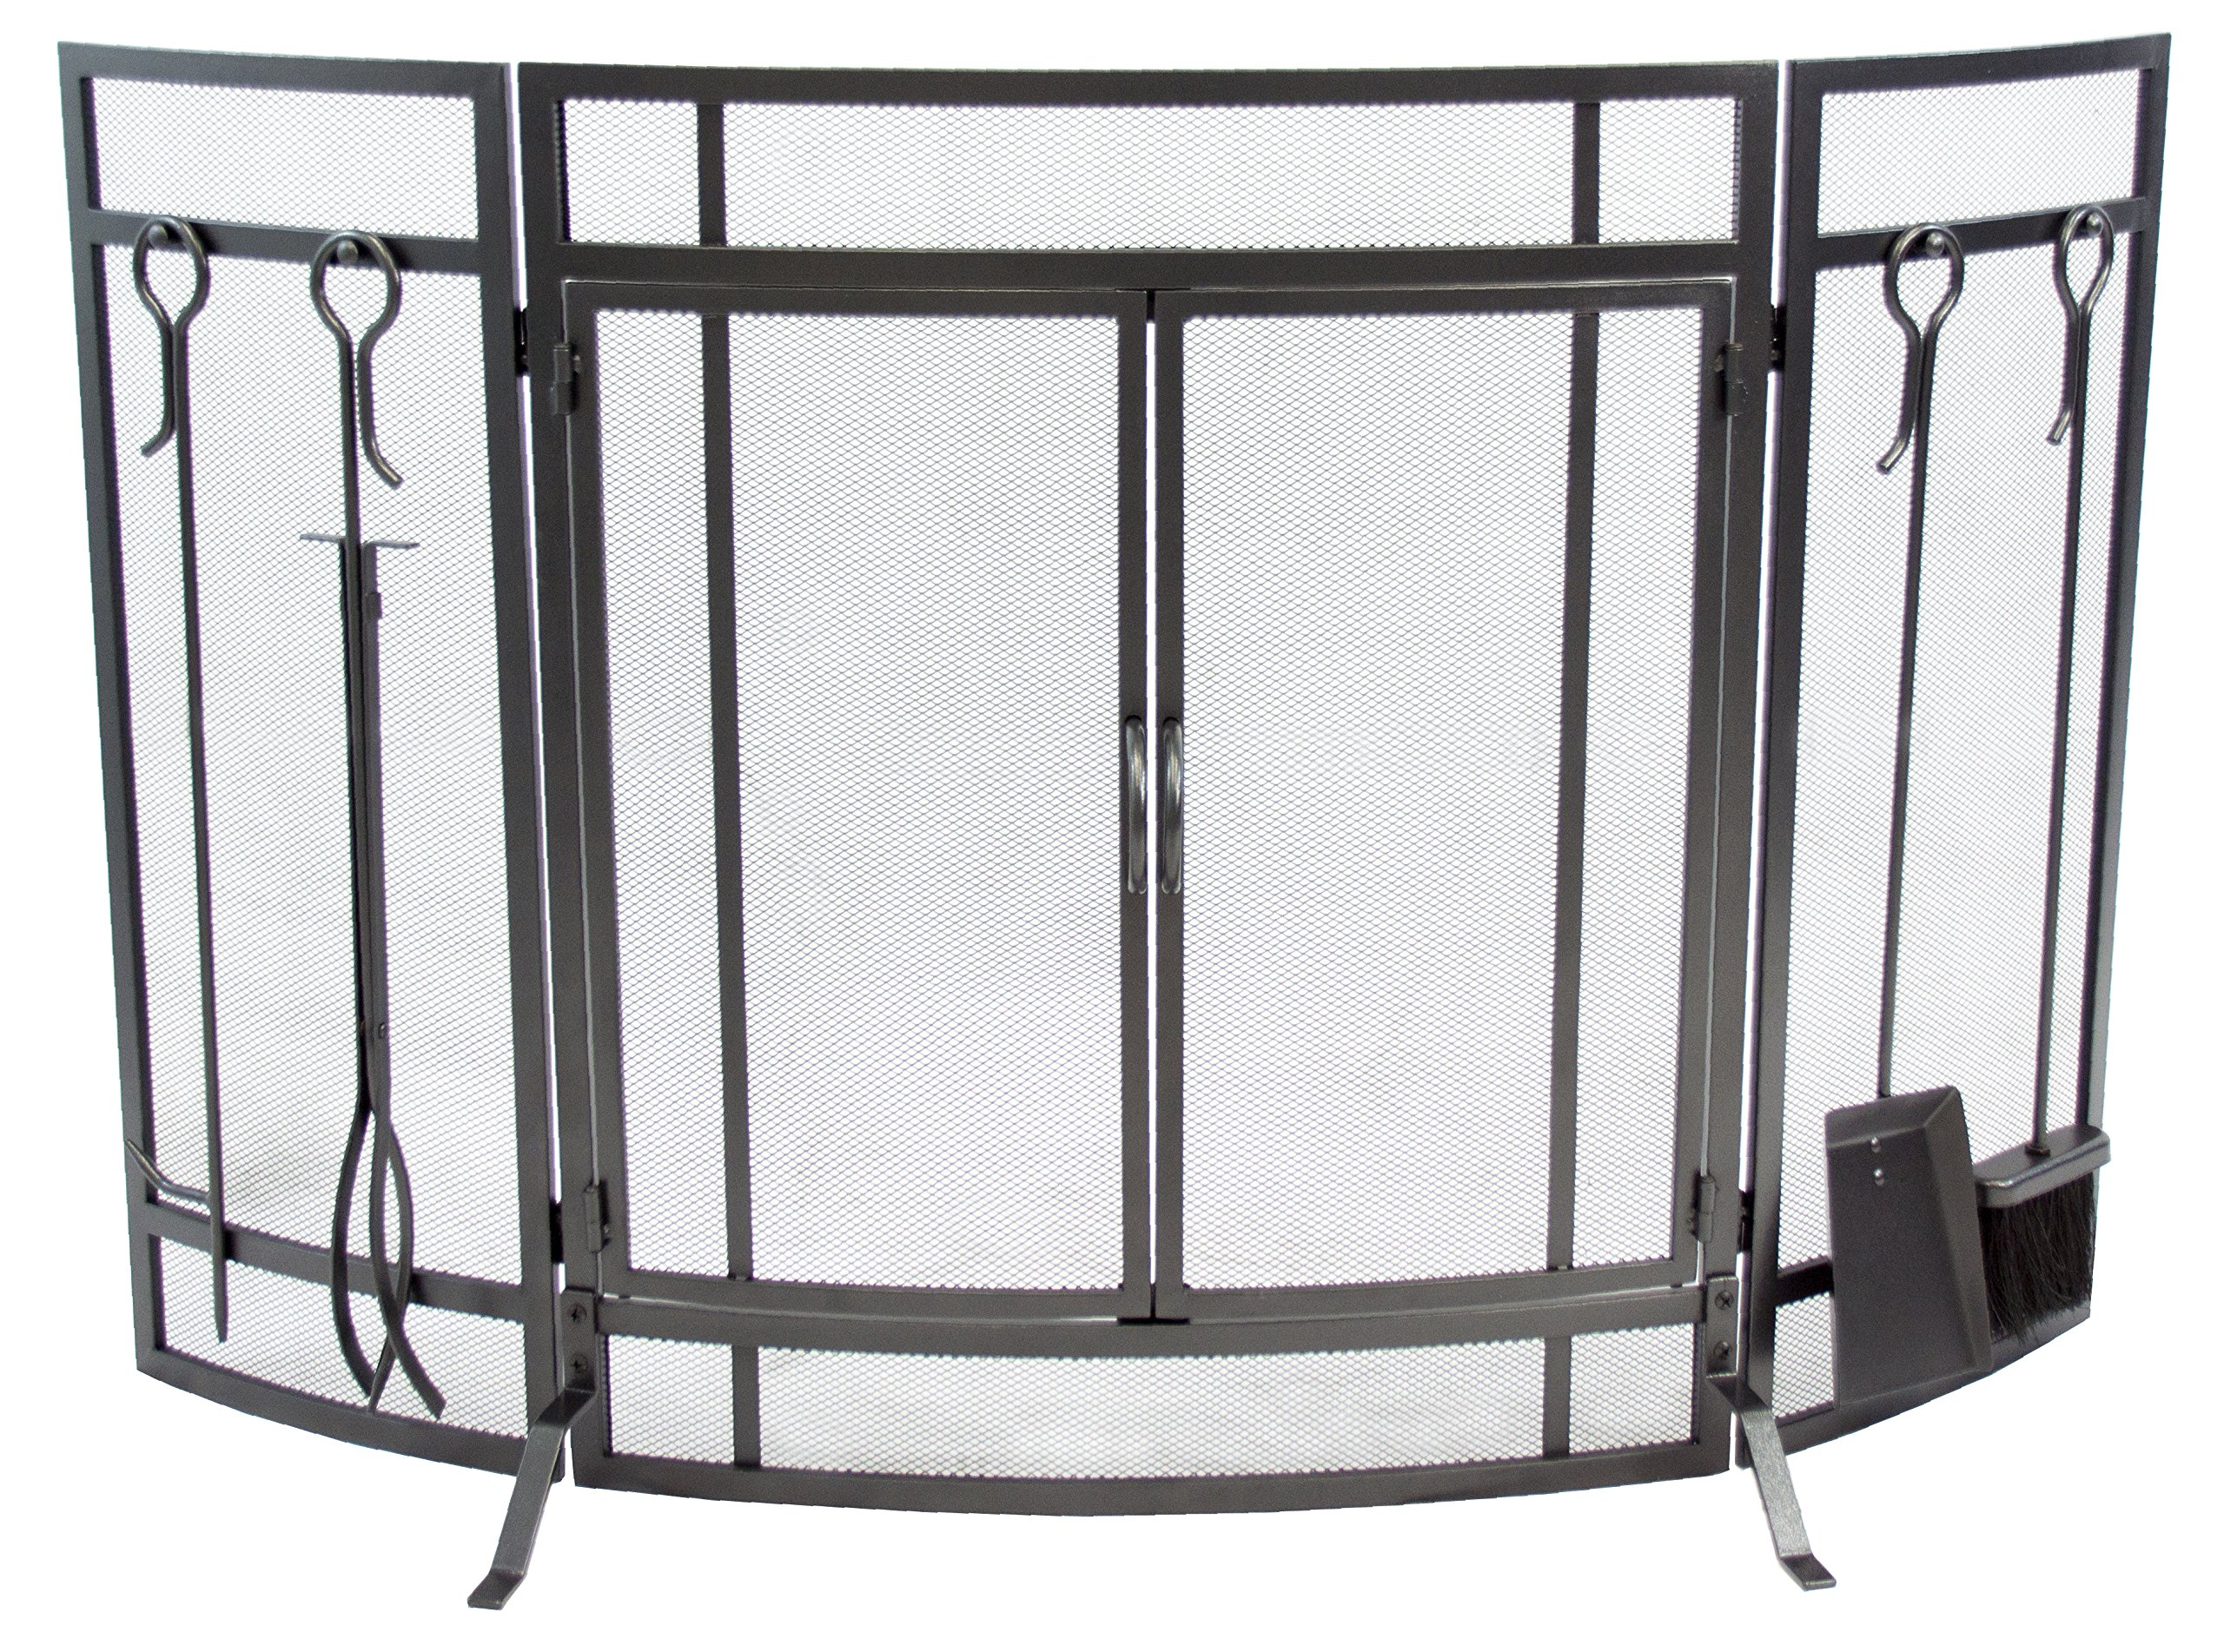 Pleasant Hearth FA498ST Curved Screen with Tools by Pleasant Hearth